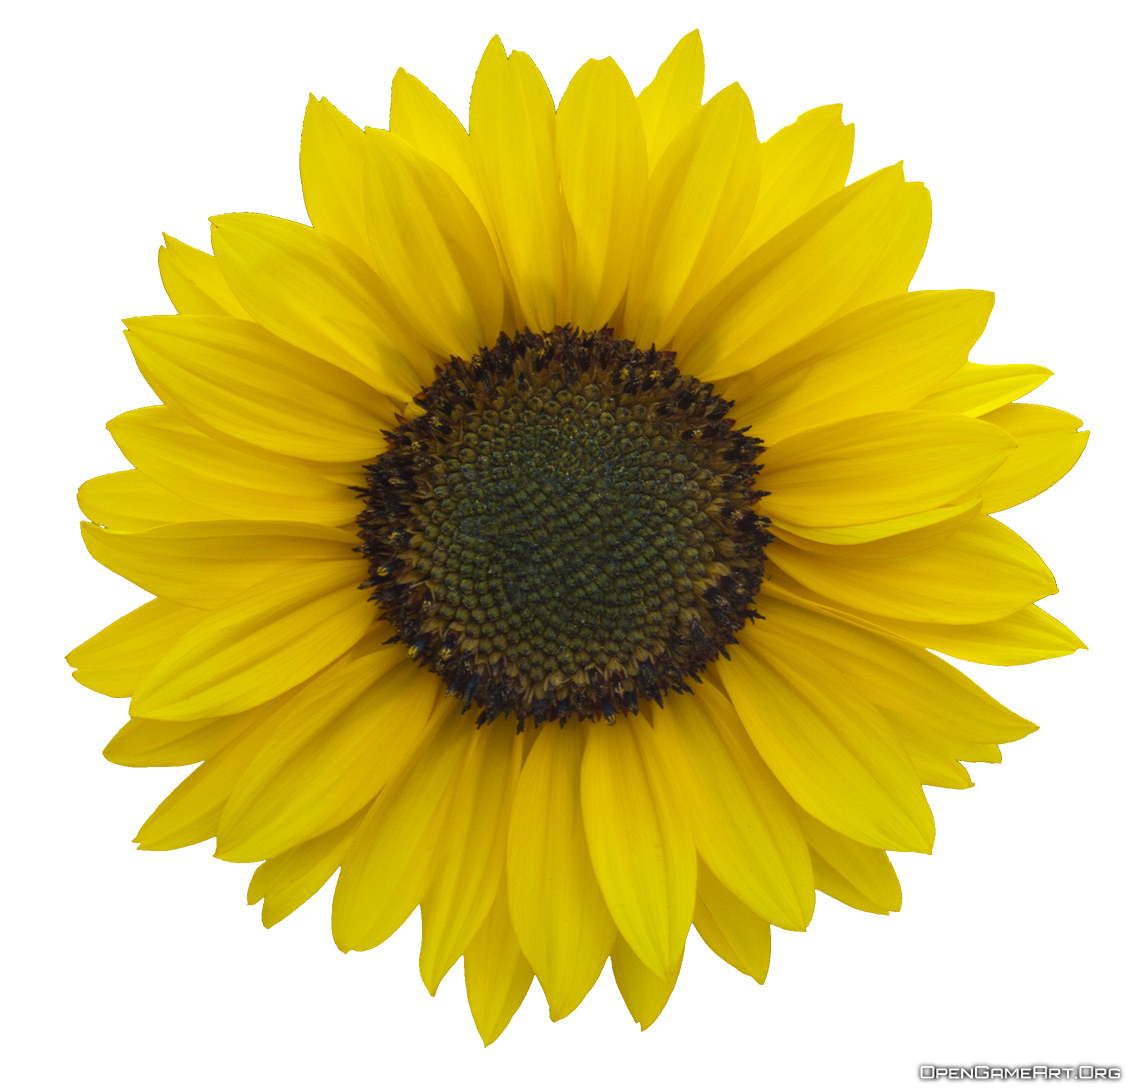 Sunflowers png transparent background. Sunflower pictures free icons